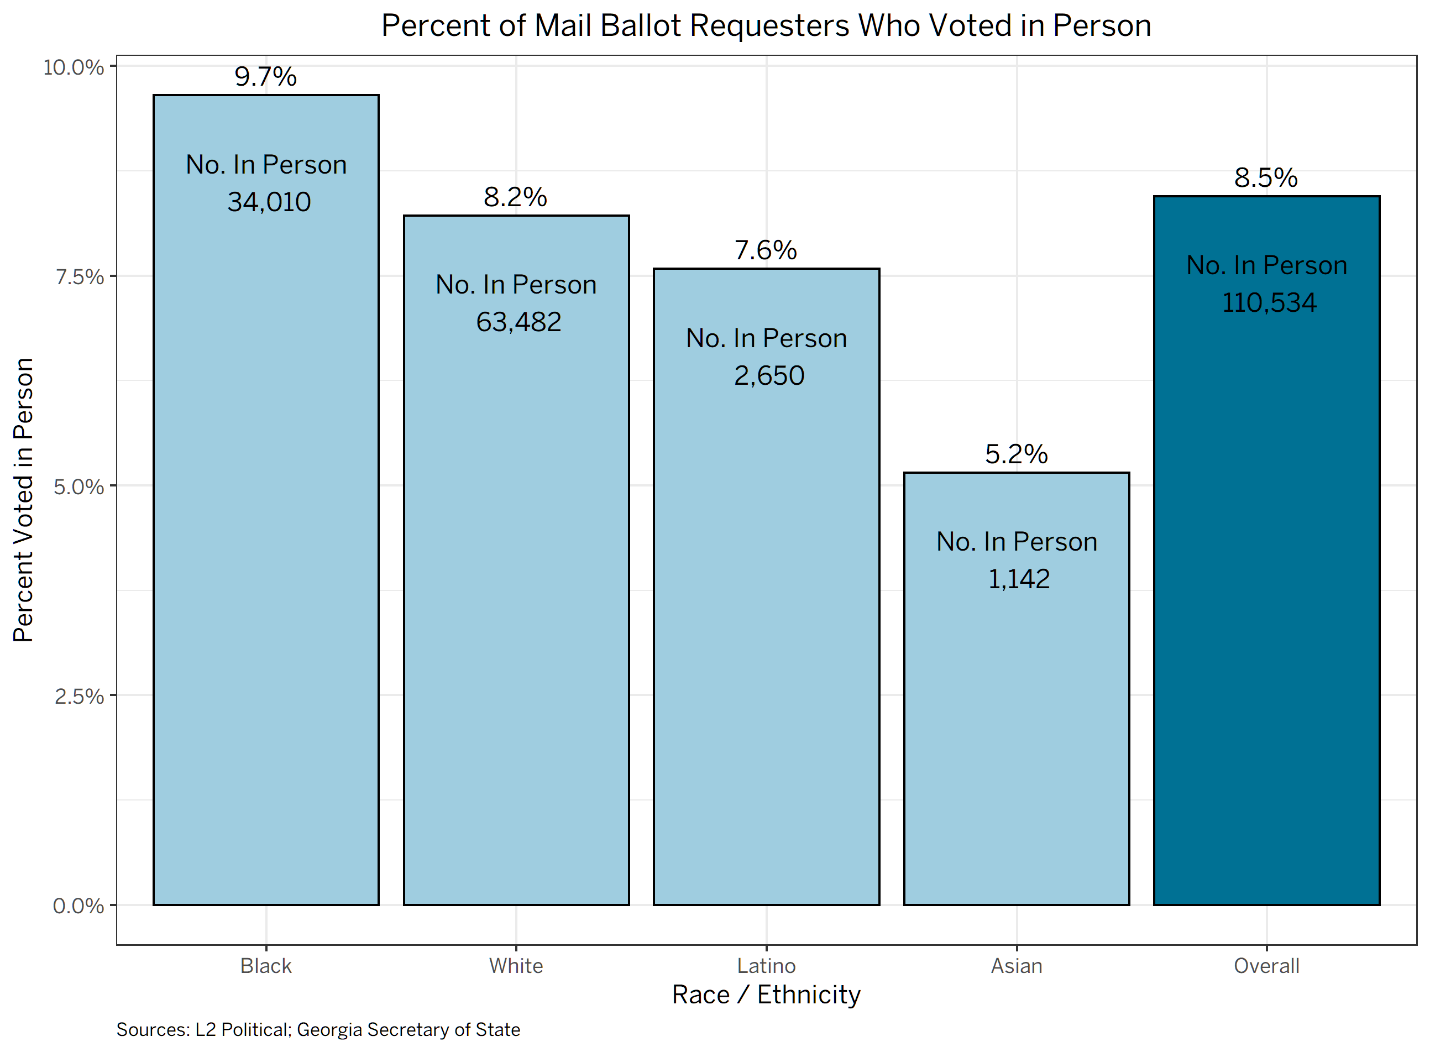 Percent of Mail Ballot Requesters Who Voted in Person